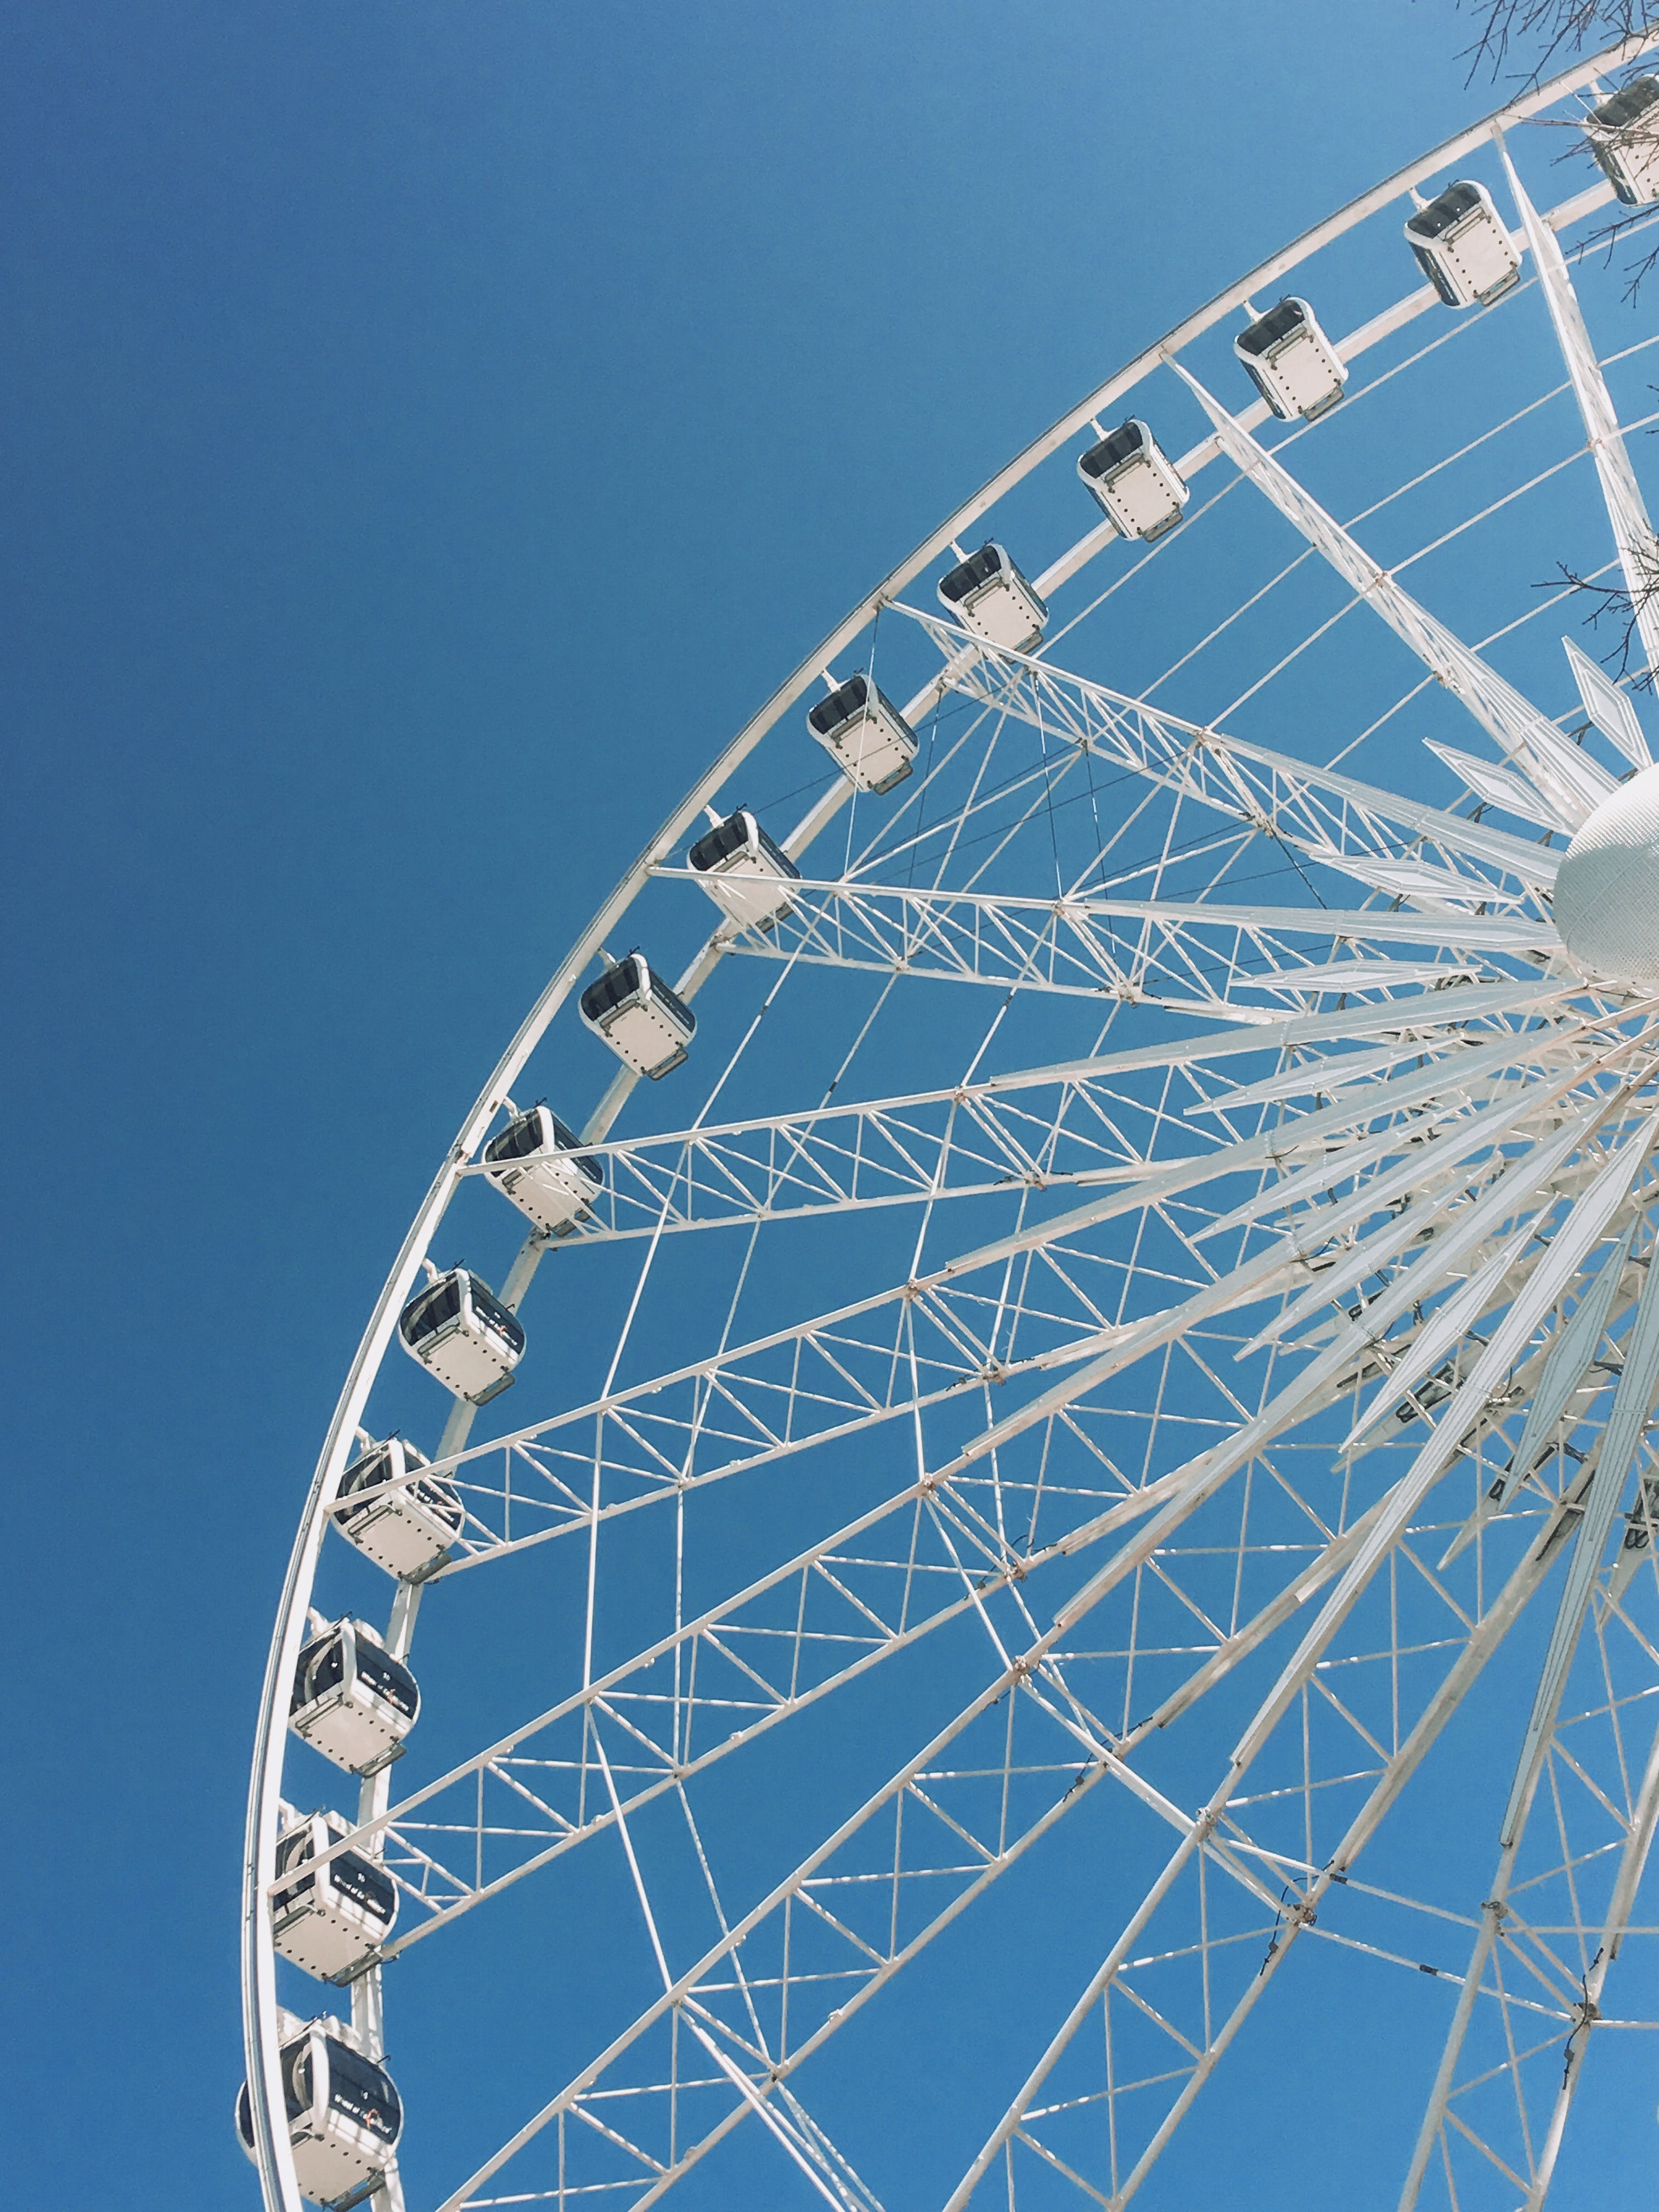 Low-Angle Photography of Ferris Wheel